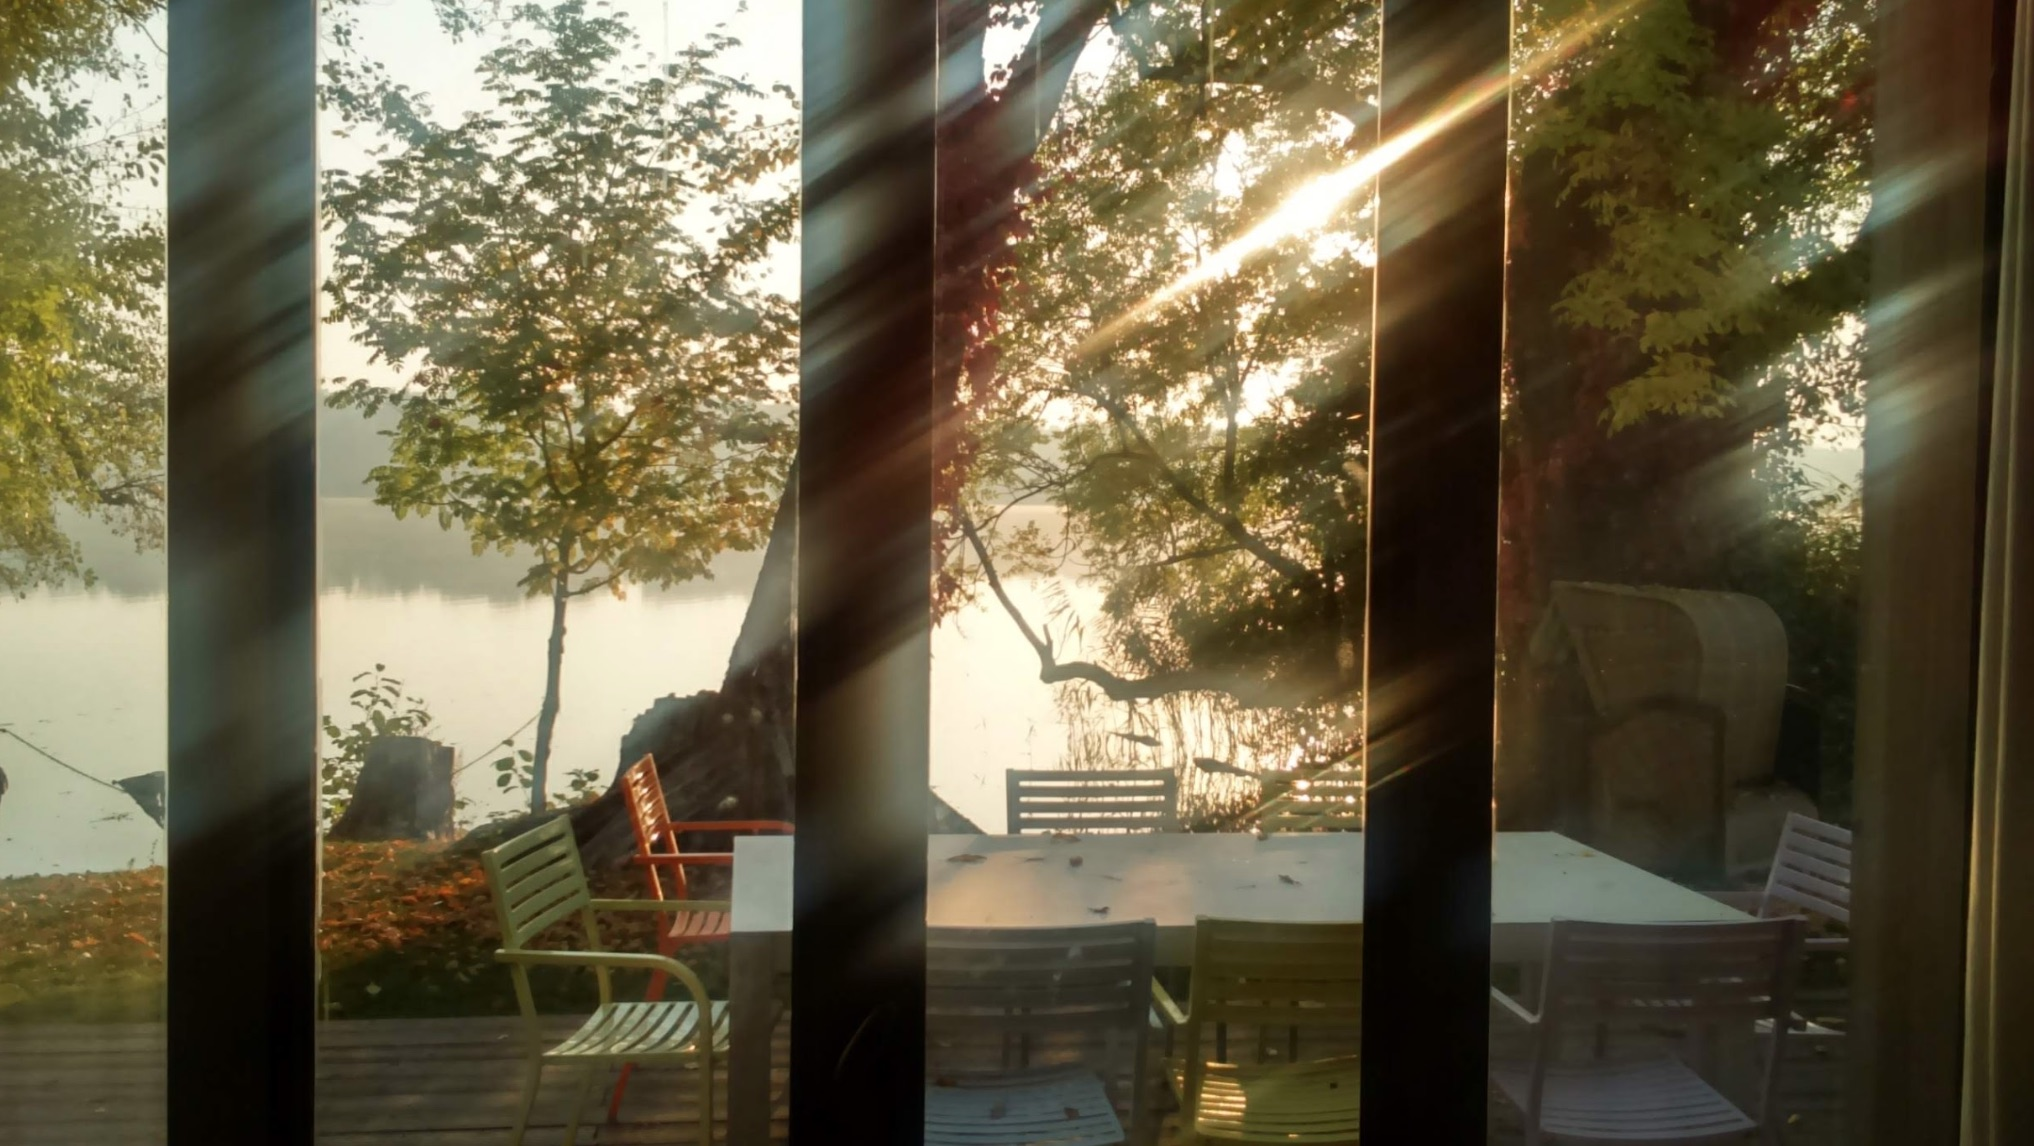 Berlin Film Residencies – Fellows of the HAUS AM SEE stipend are invited to spend up to three months in Bad Saarow, just an hour away from Berlin